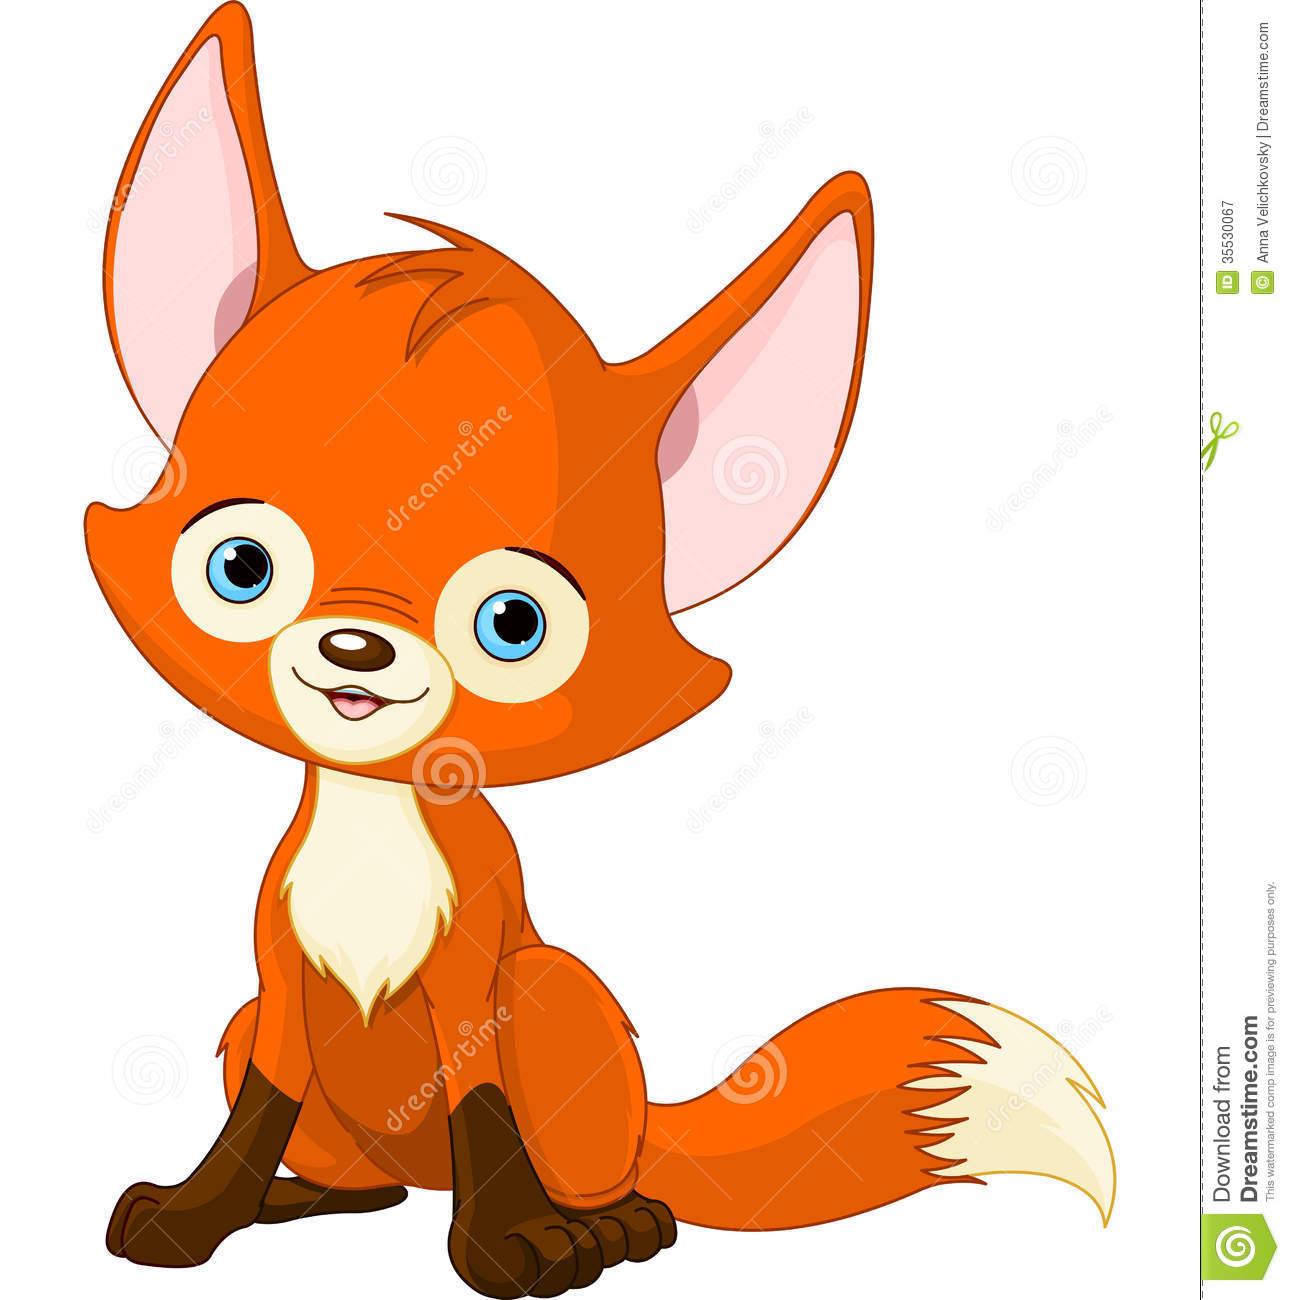 Cute Baby Fox Royalty Free Stock Photography - Image: 35530067